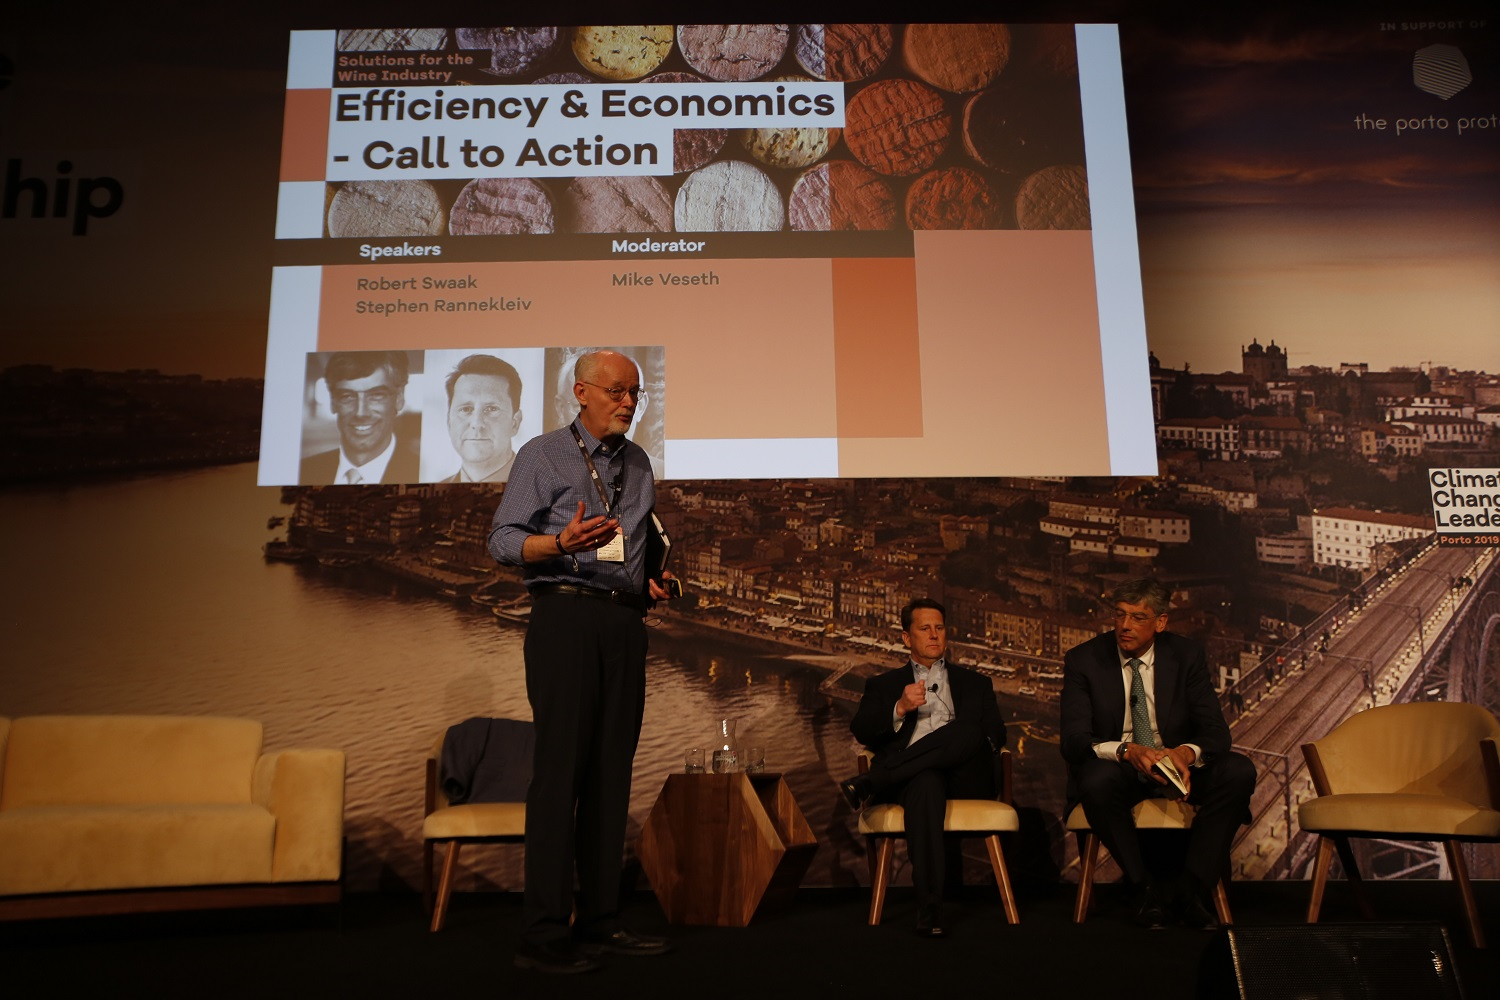 """EFFICIENCY & ECONOMICS - CALL TO ACTION"""